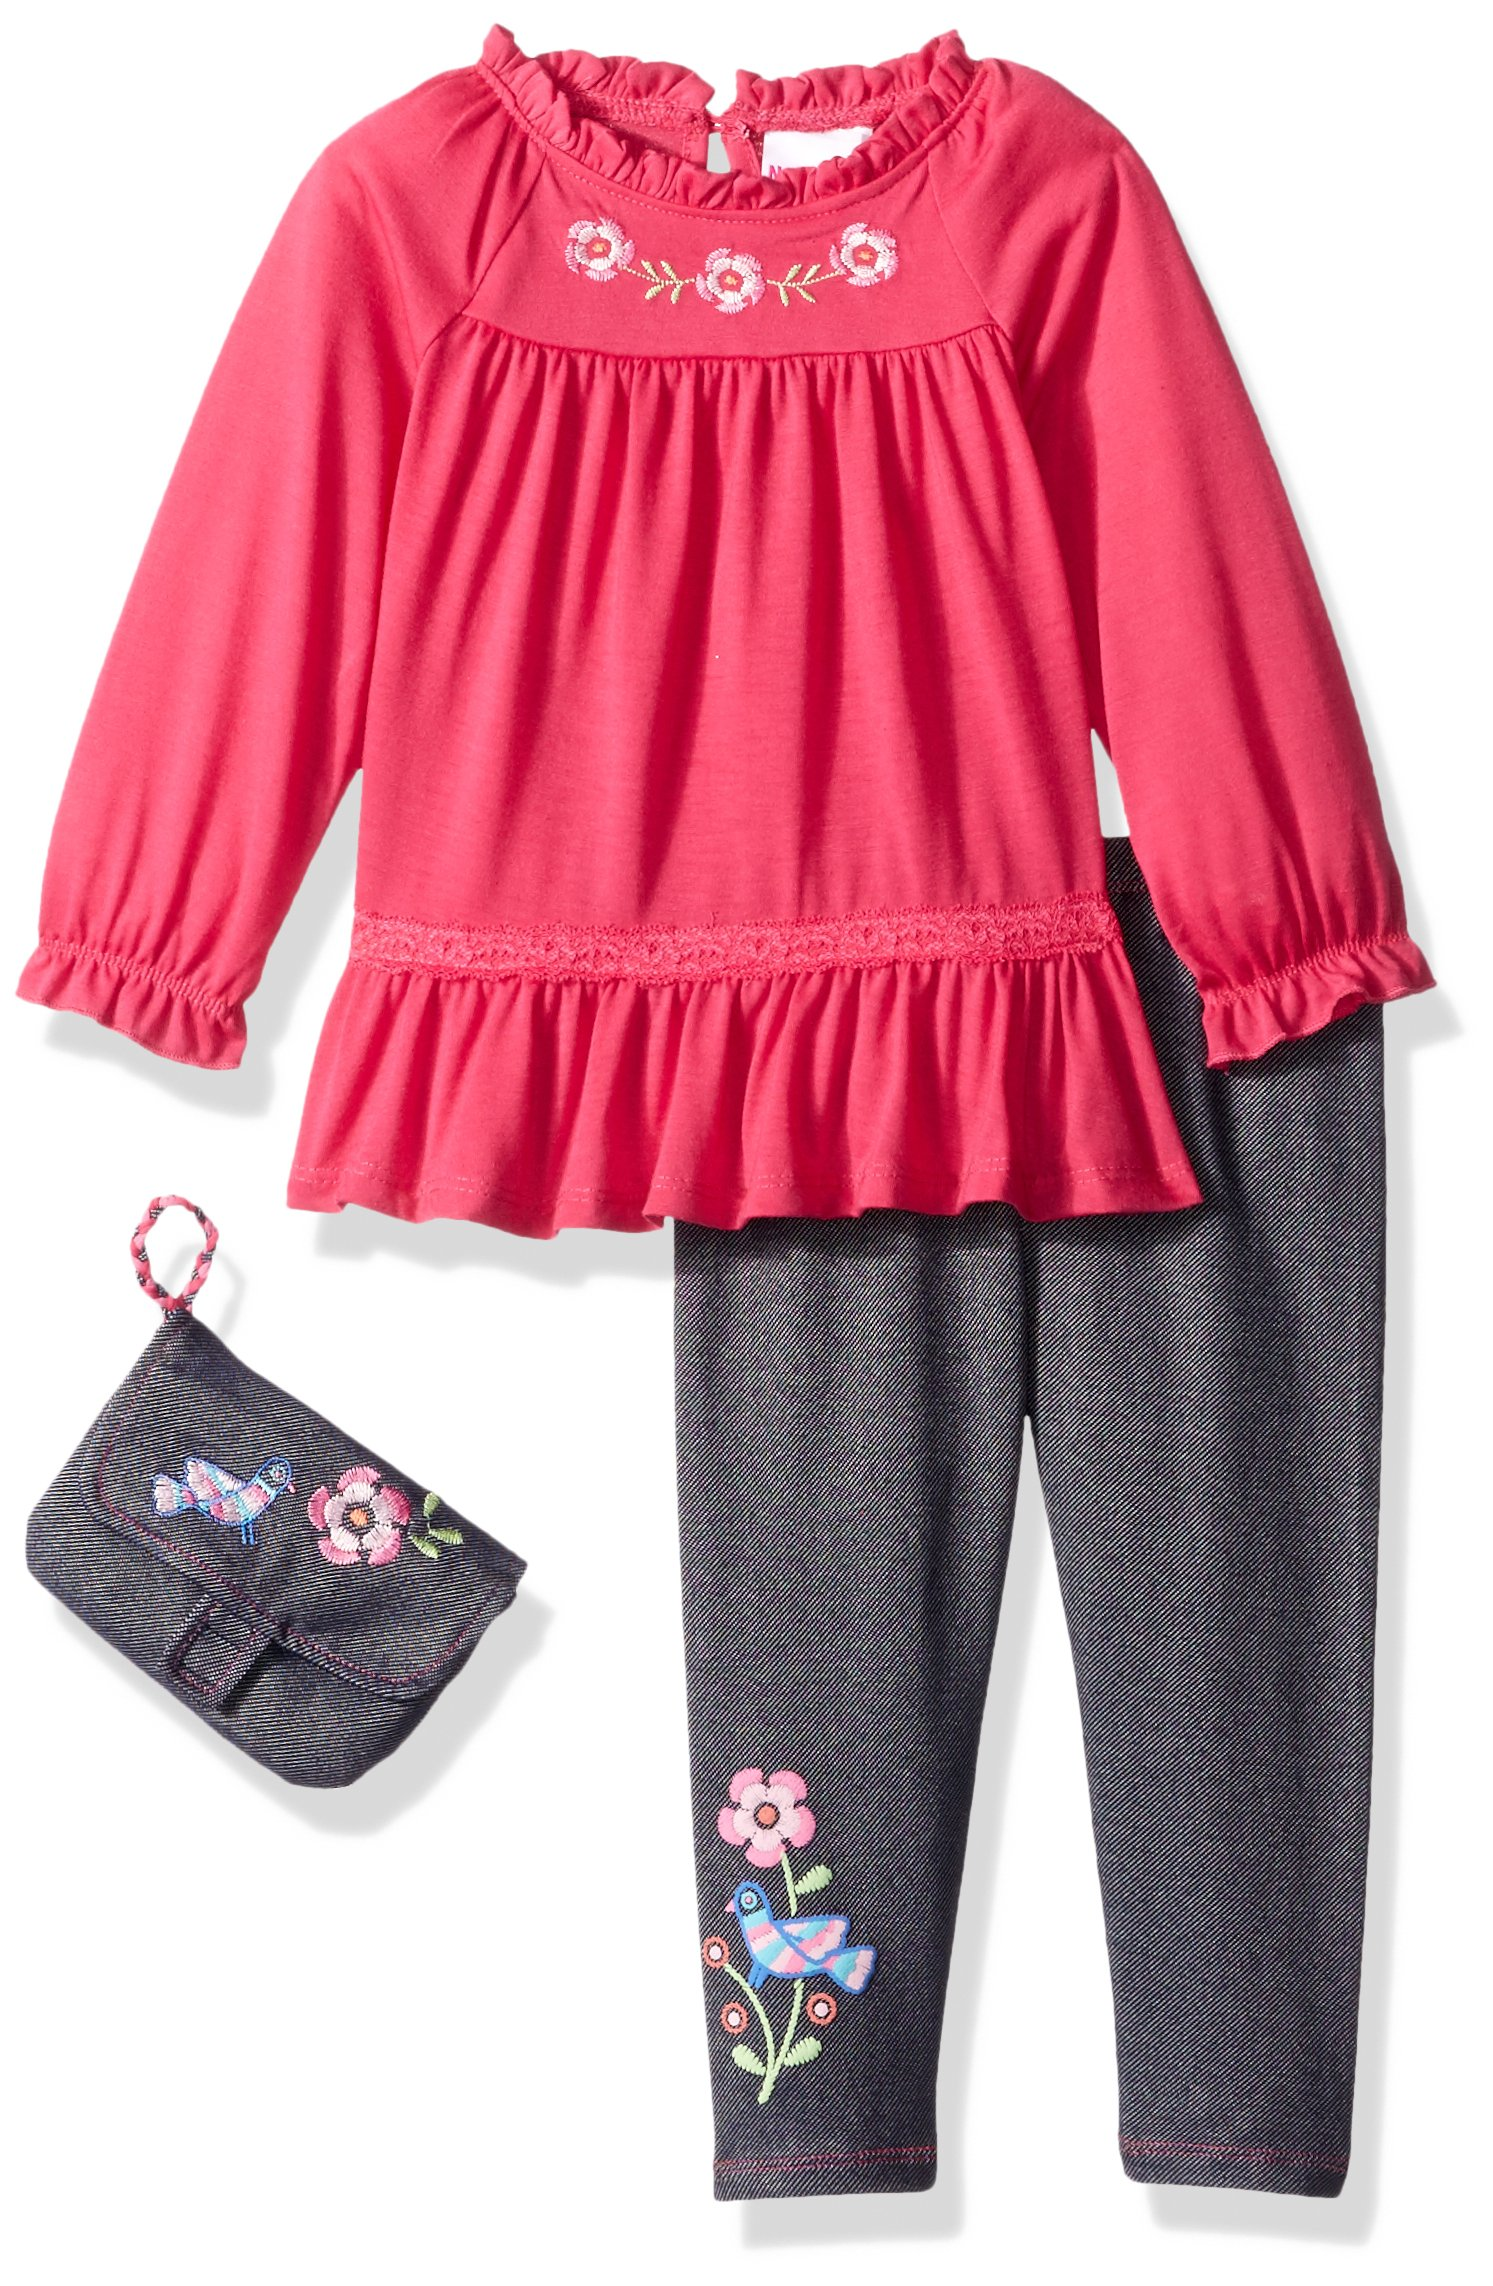 Nannette Little Girls' 2 Piece Embroidered Top and Jegging Set with Purse, Pink, 6